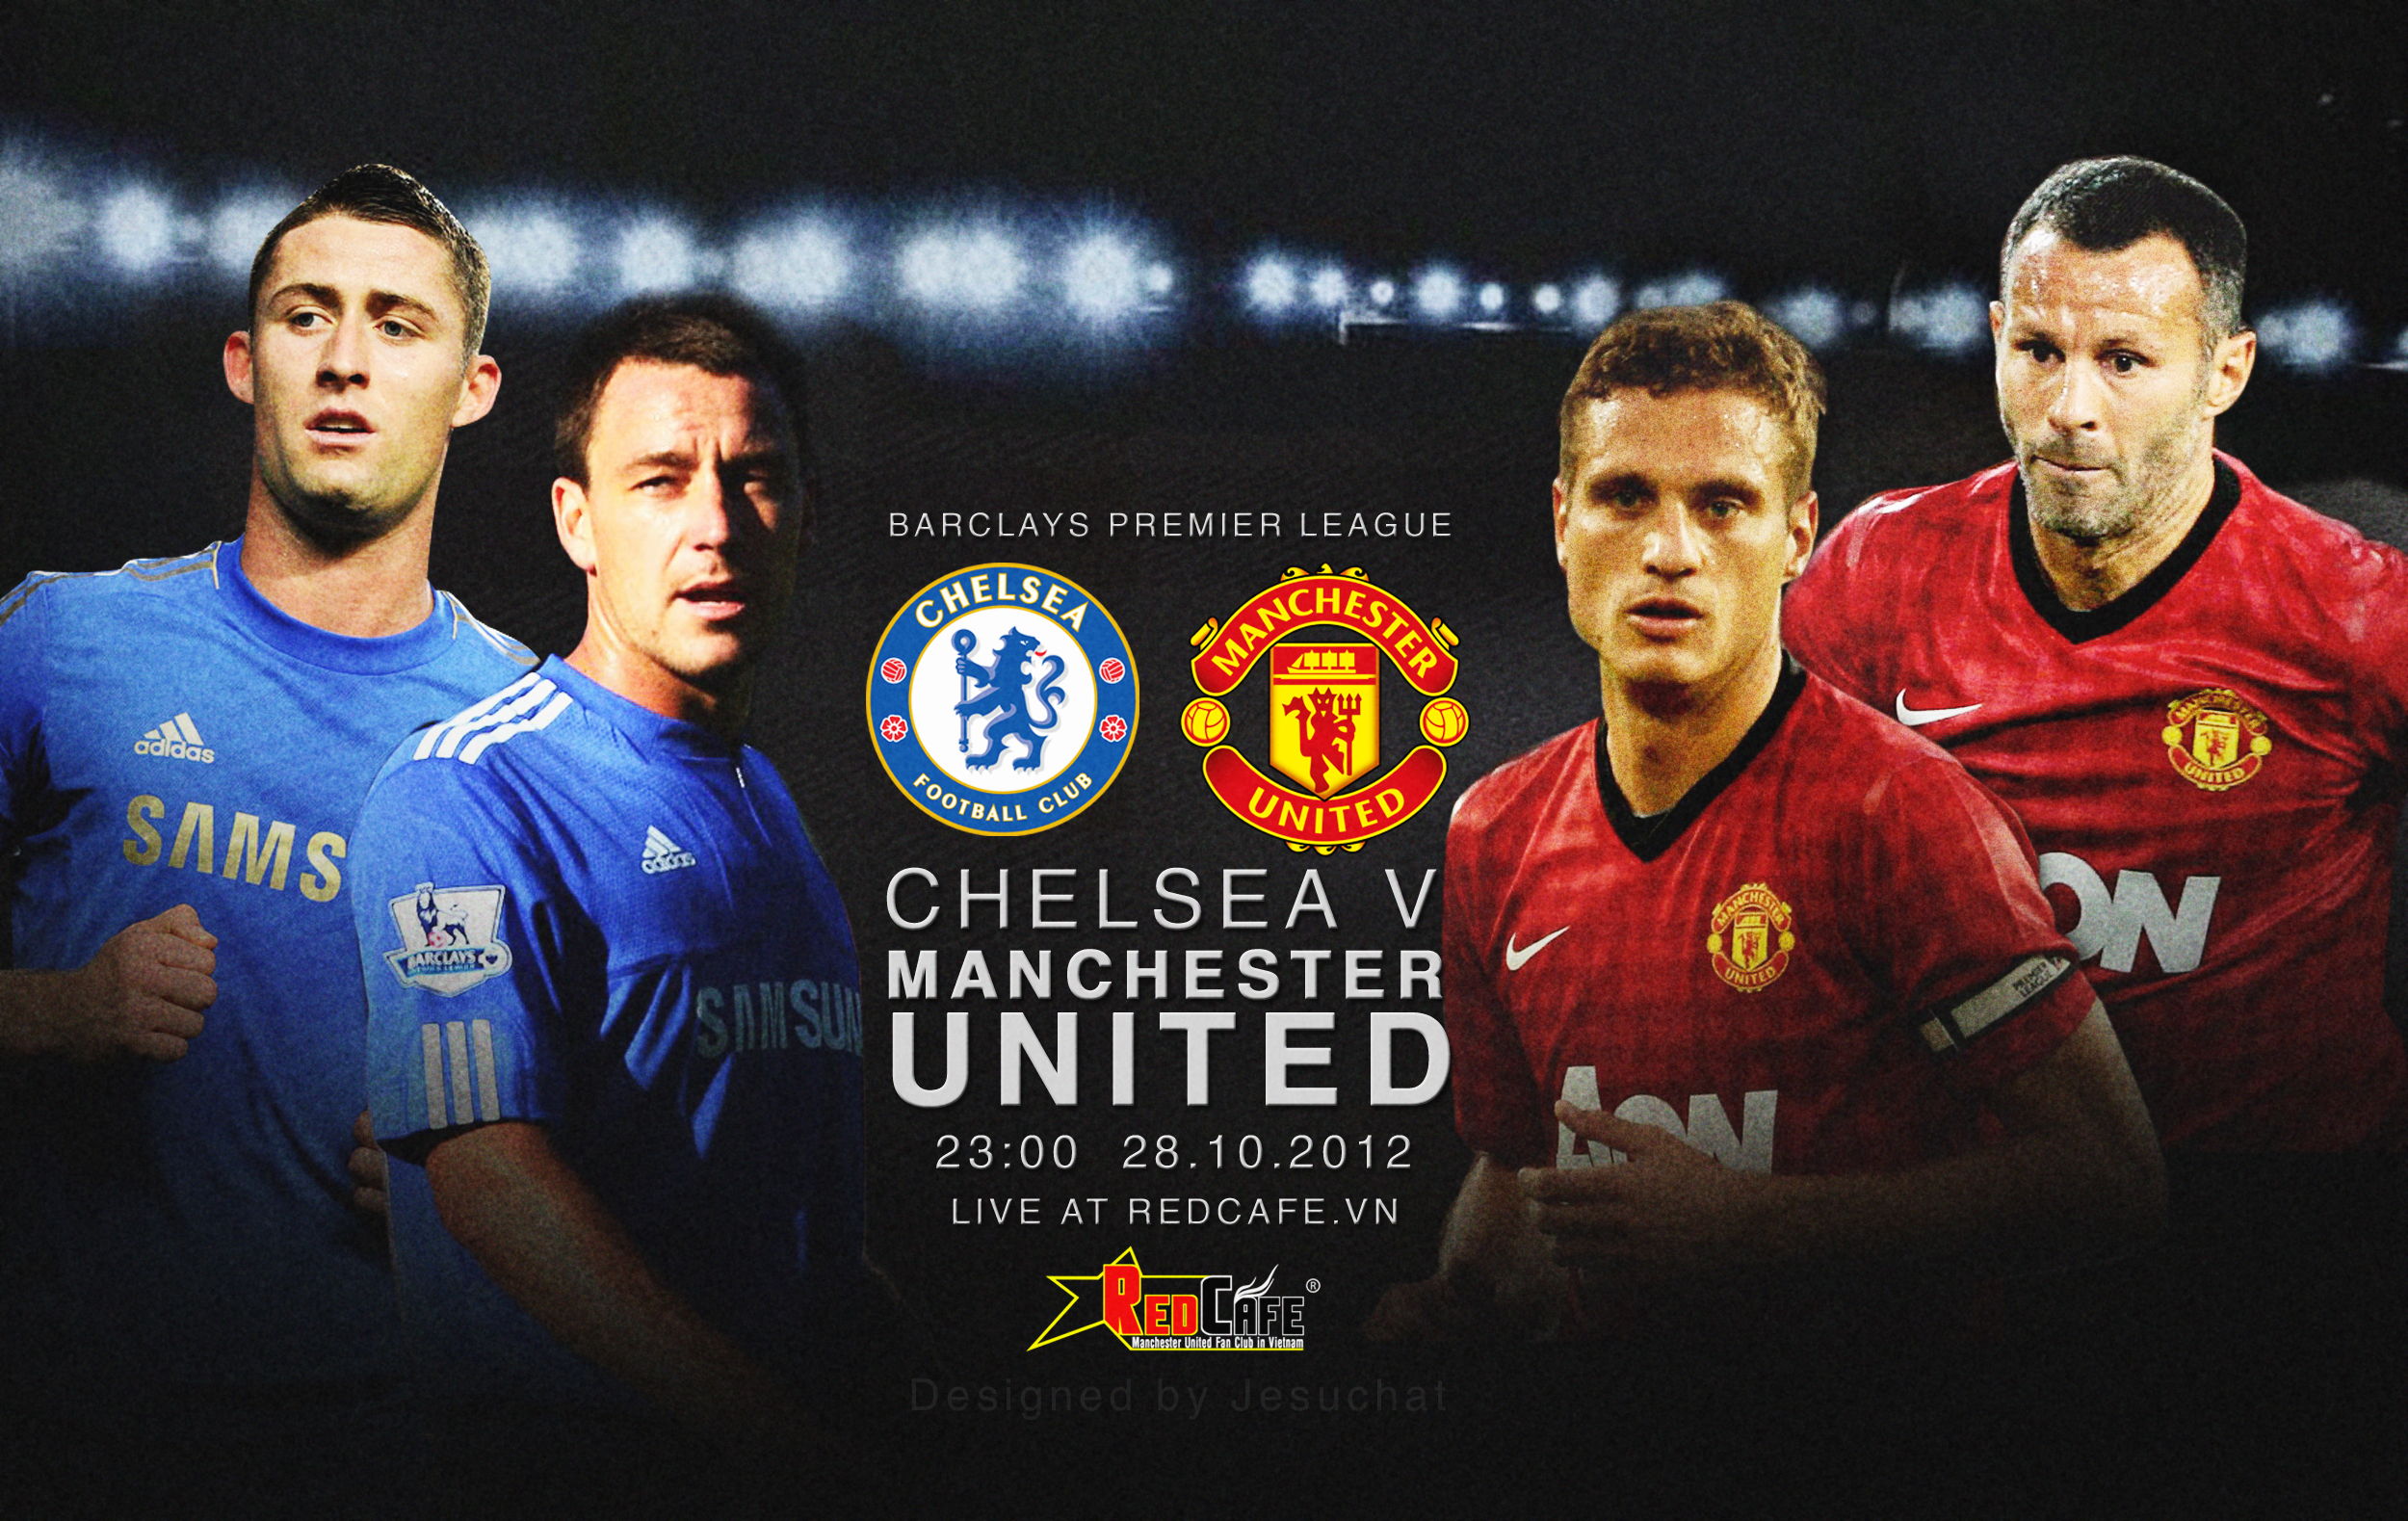 chelsea vs man united - photo #11